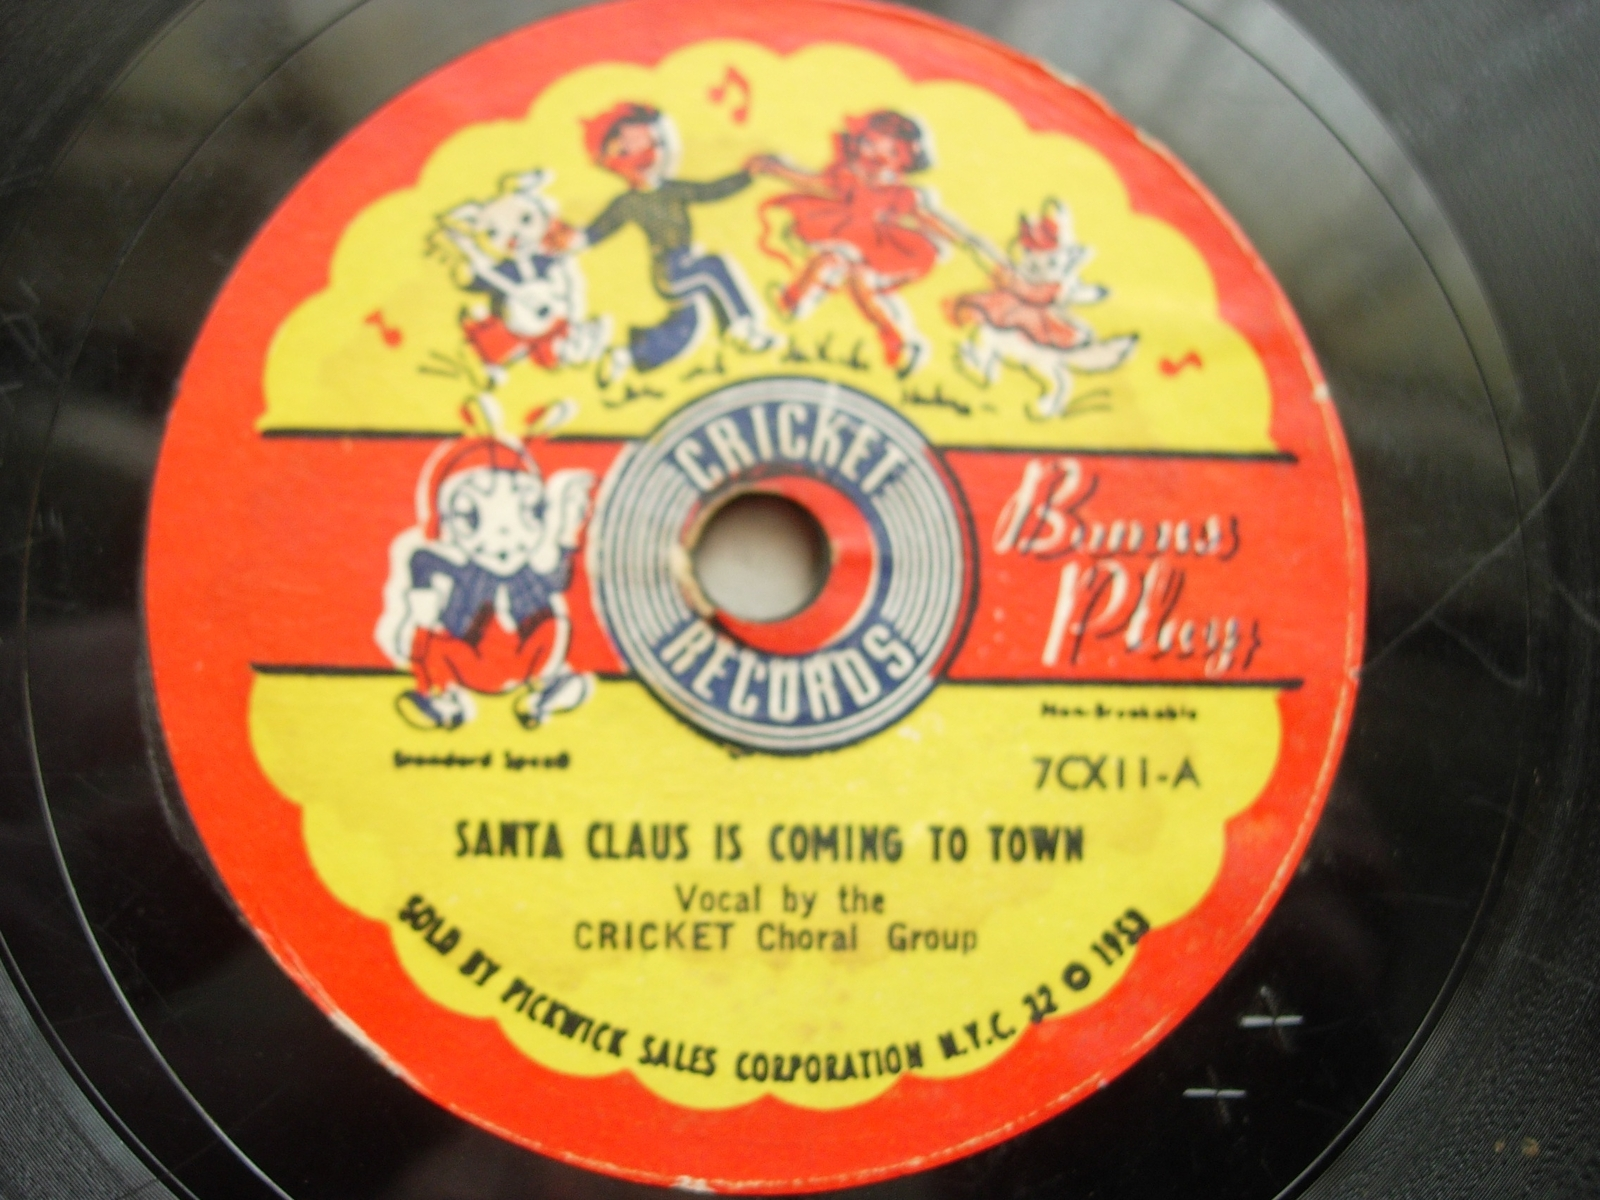 Cricketones - Ding-A-Ling Dong, The Sleigh Bell Song - Cricket Records 7CX11